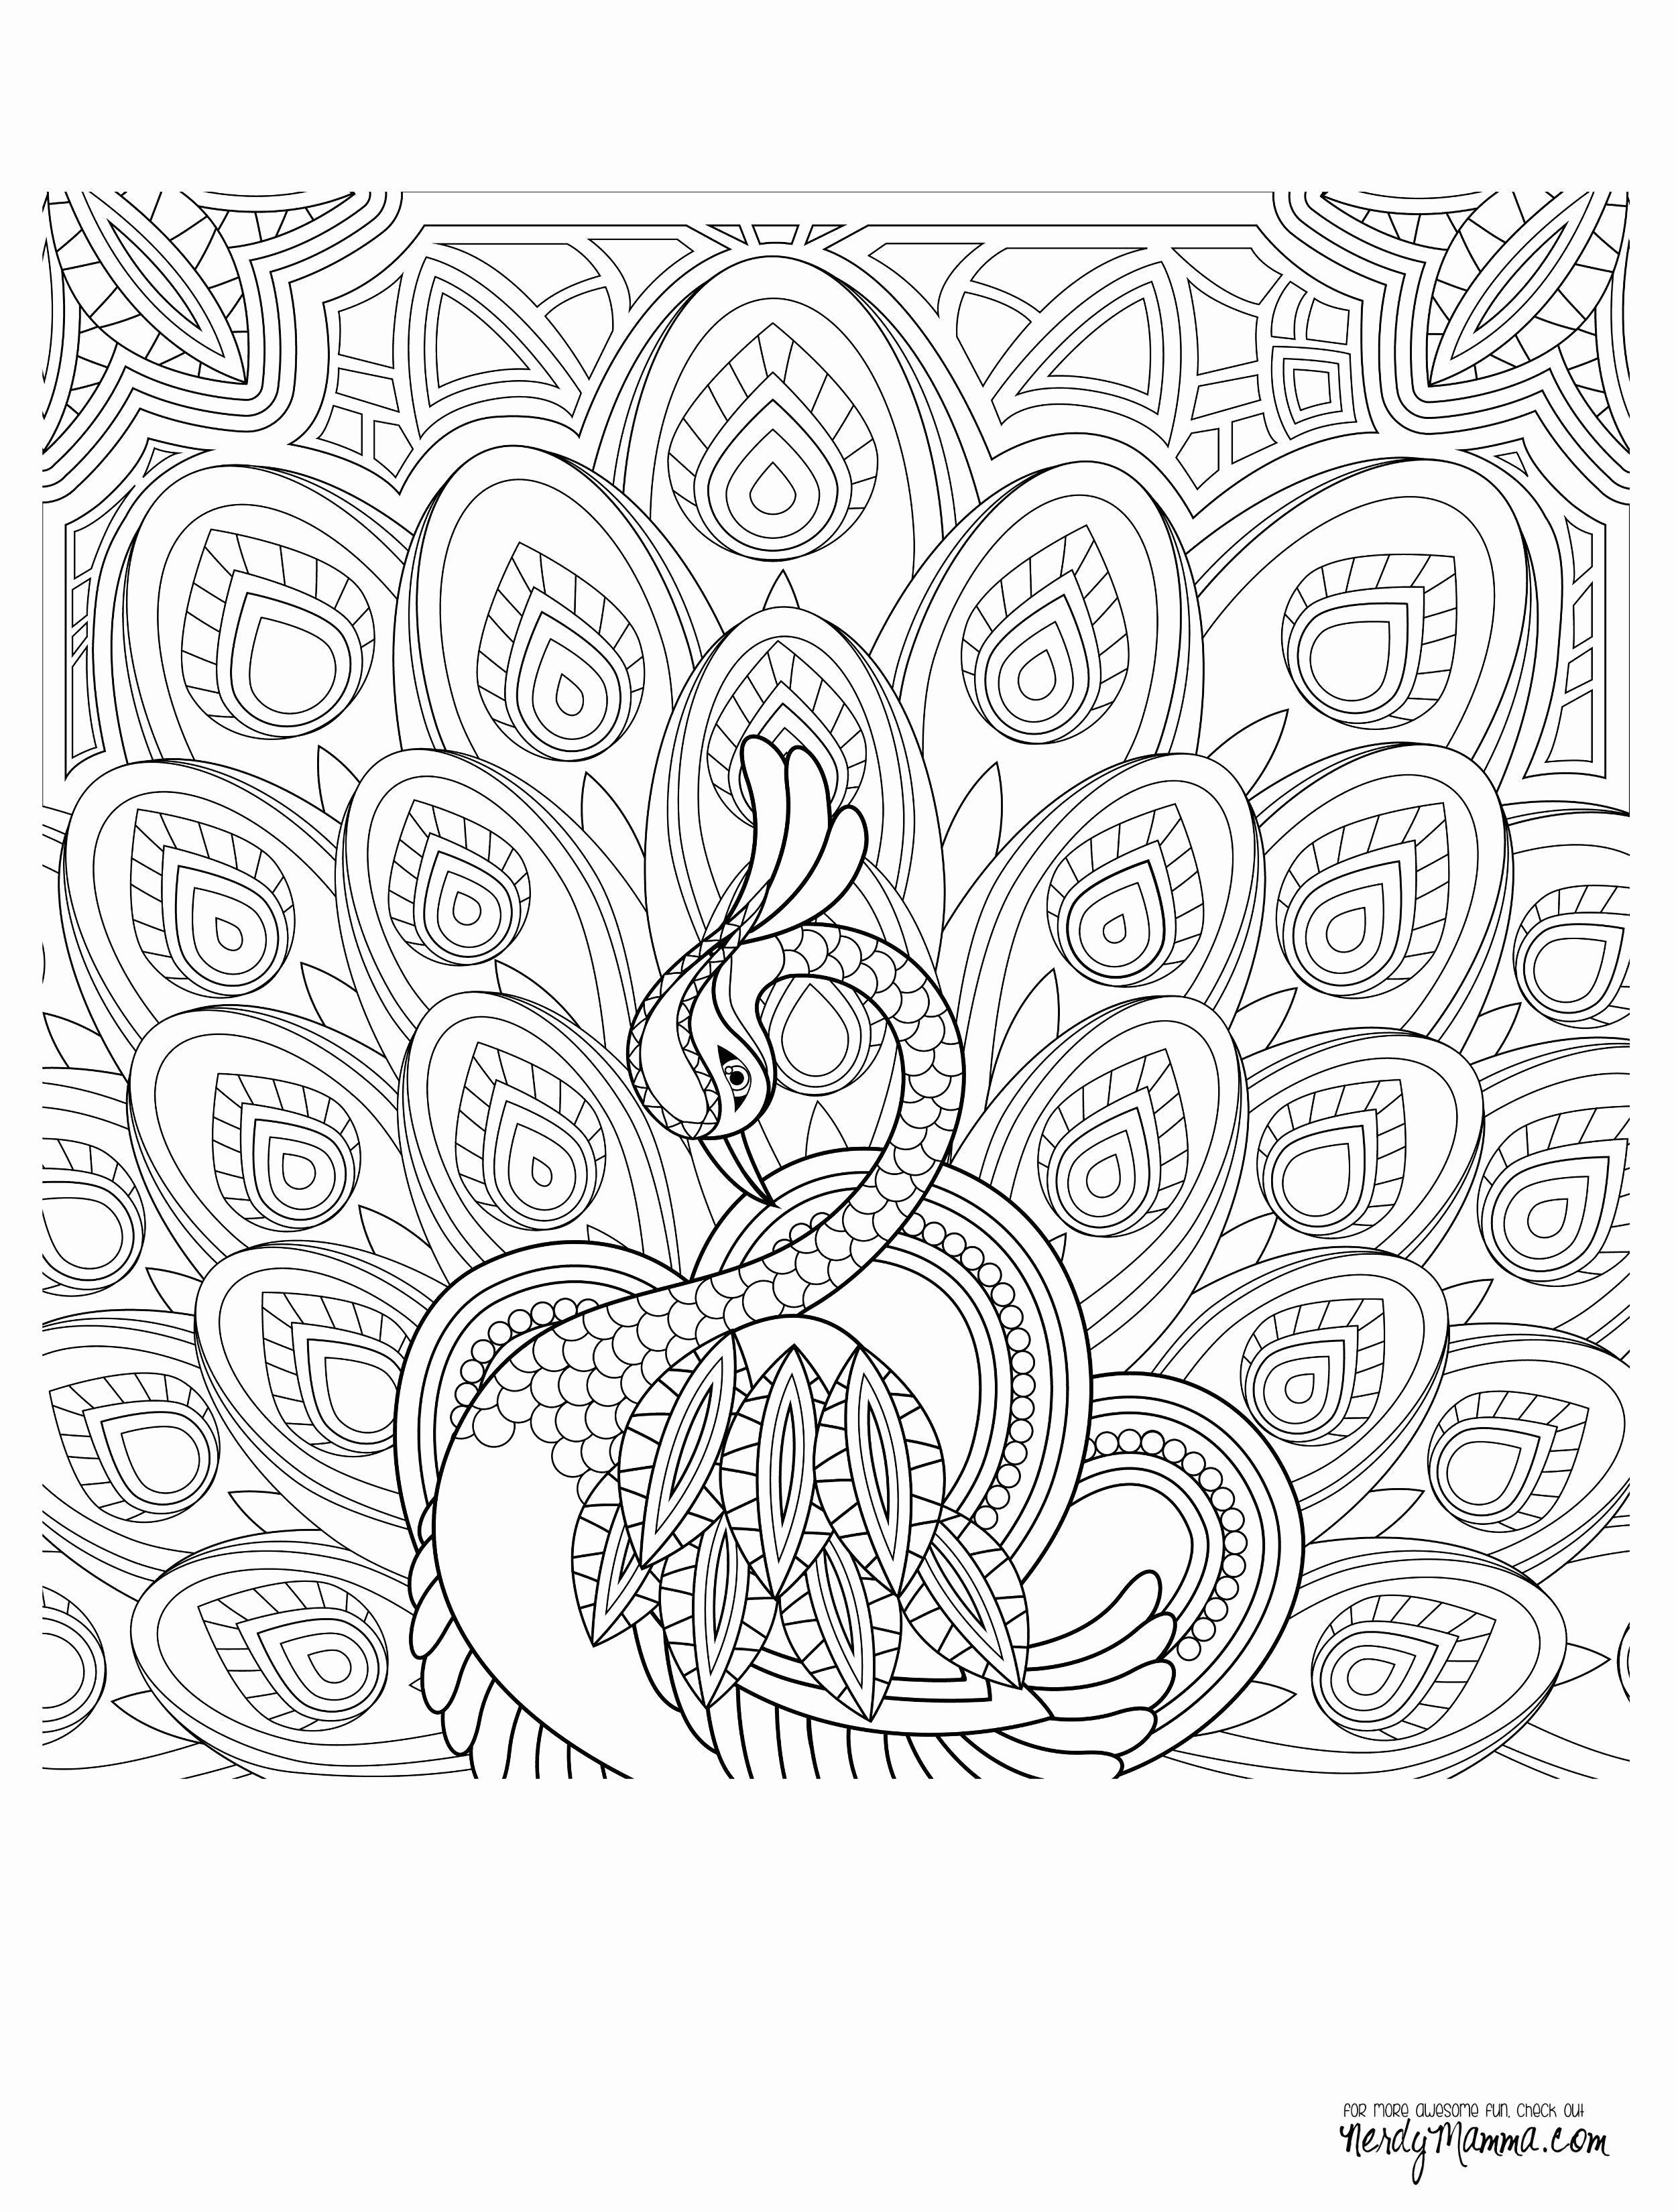 Colombian Flag Coloring Page Luxury Map Of Barbados Coloring Page